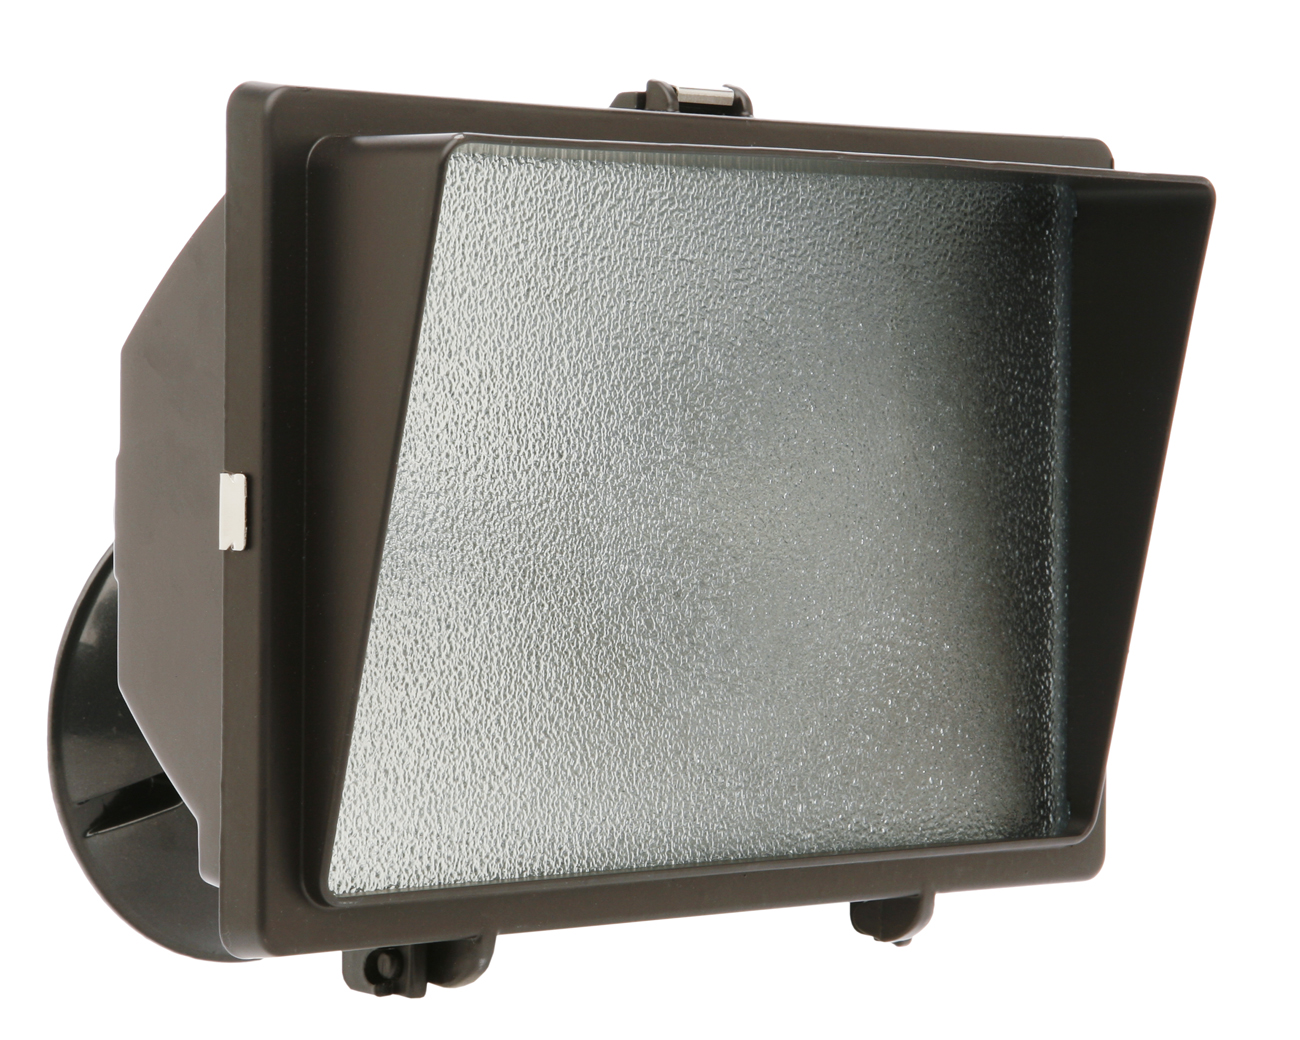 LT, SECURITY 500W HALOGEN W/ EYEBROW BR